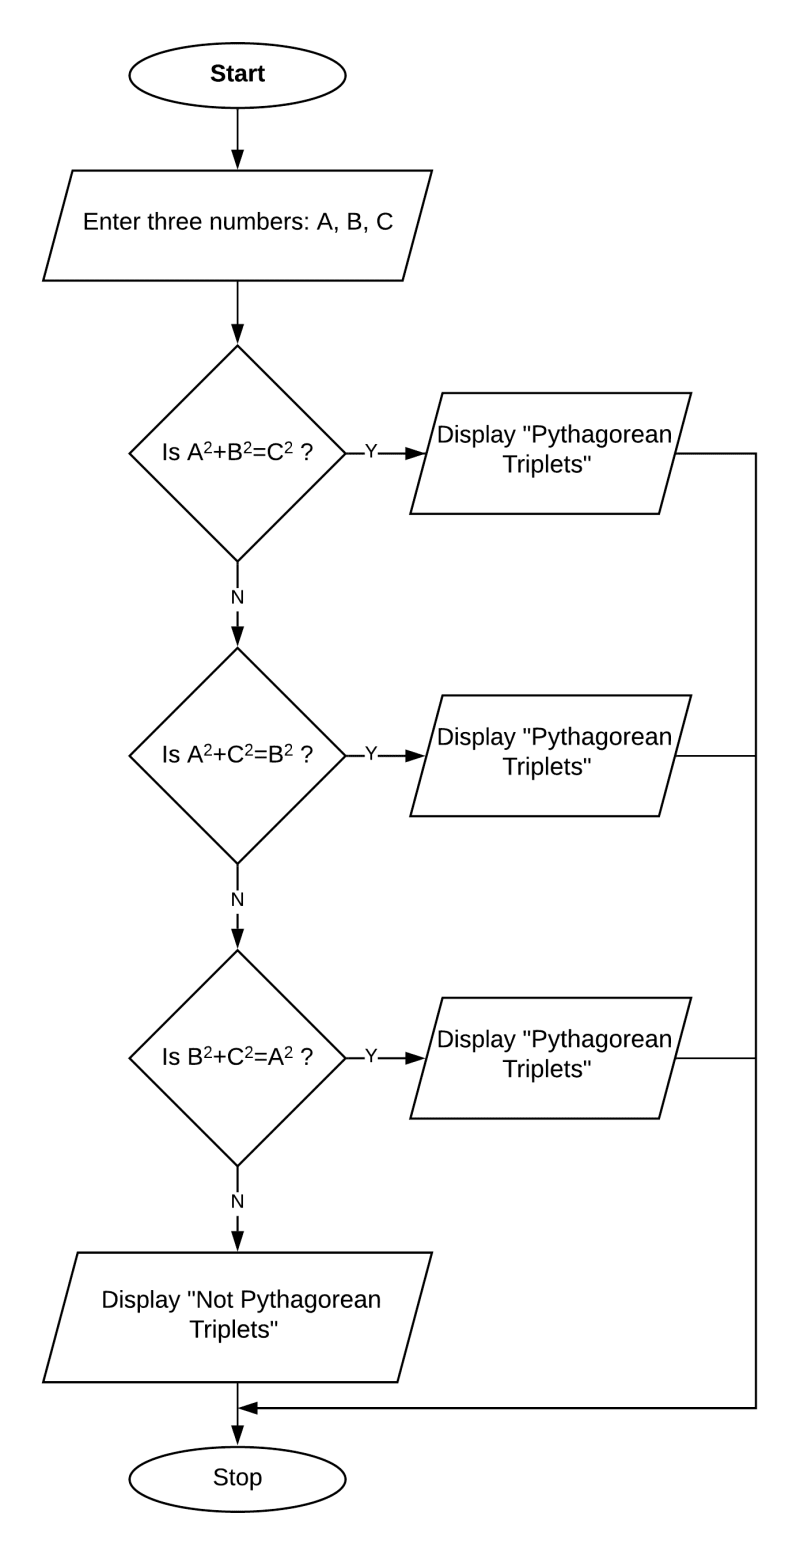 Flowchart to check if three numbers form Pythagorean Triplets. Class 8 ICSE Computer Studies.